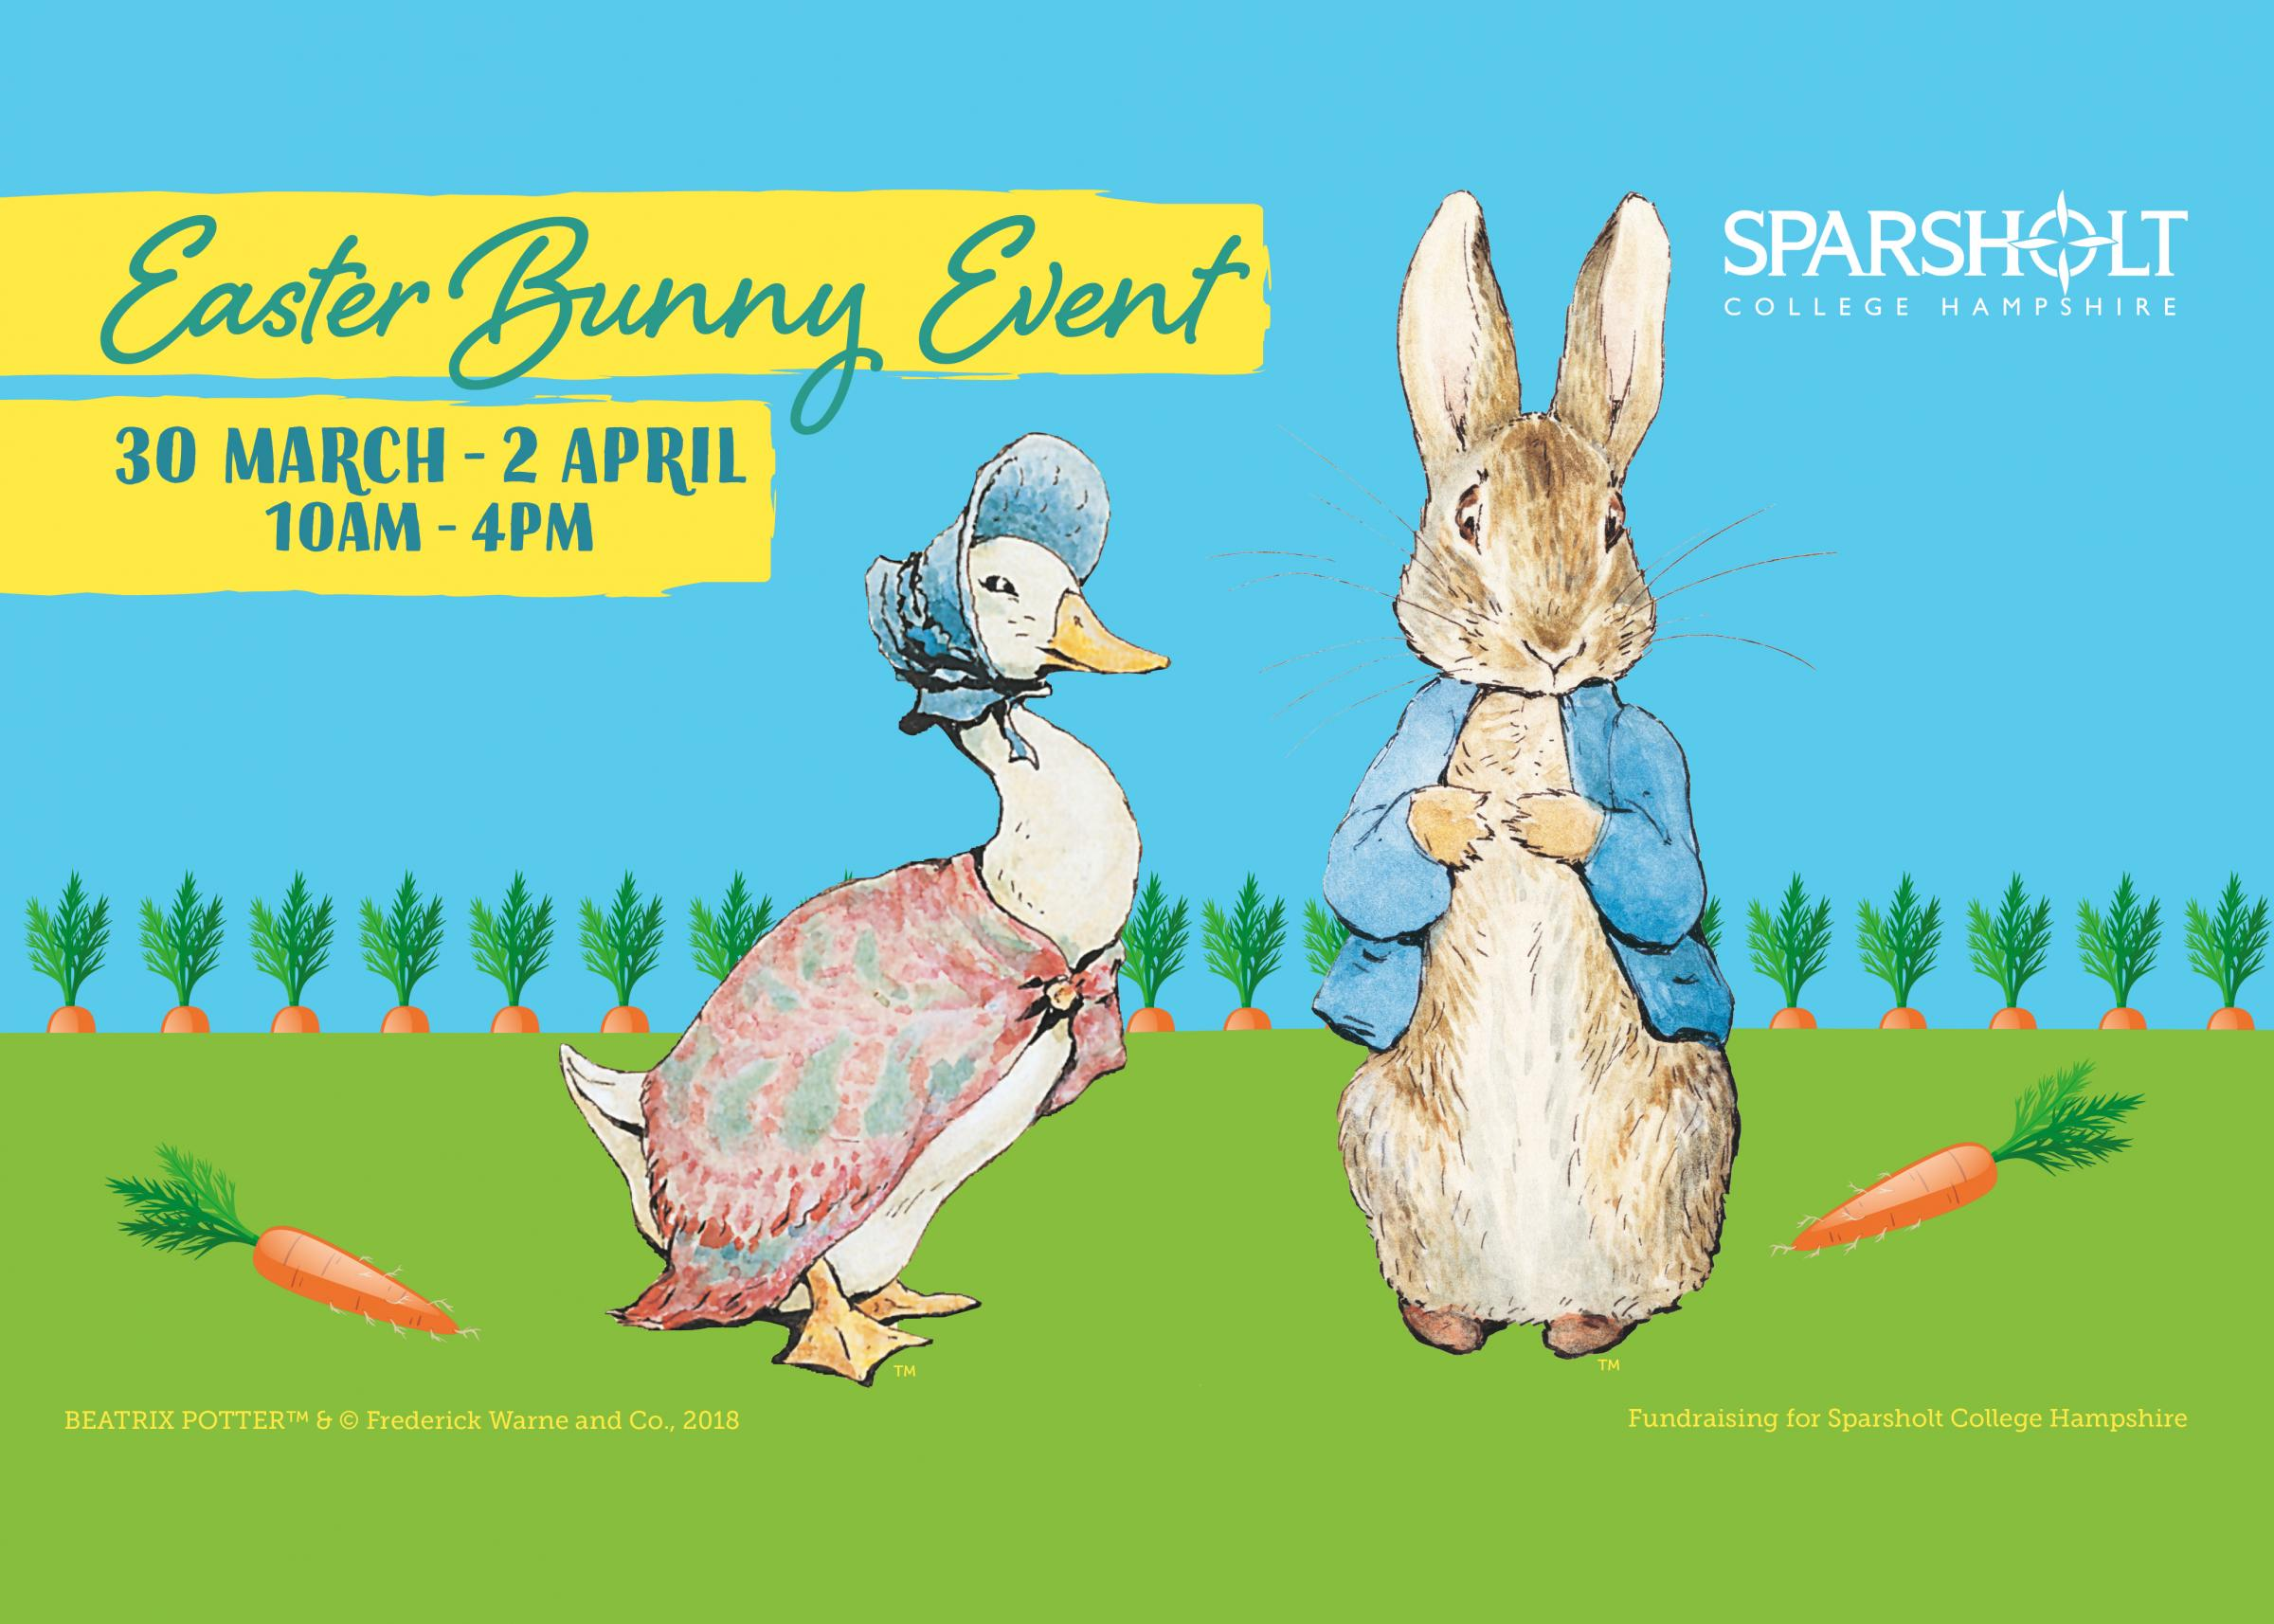 Easter Bunny Event - Sparsholt College Hampshire